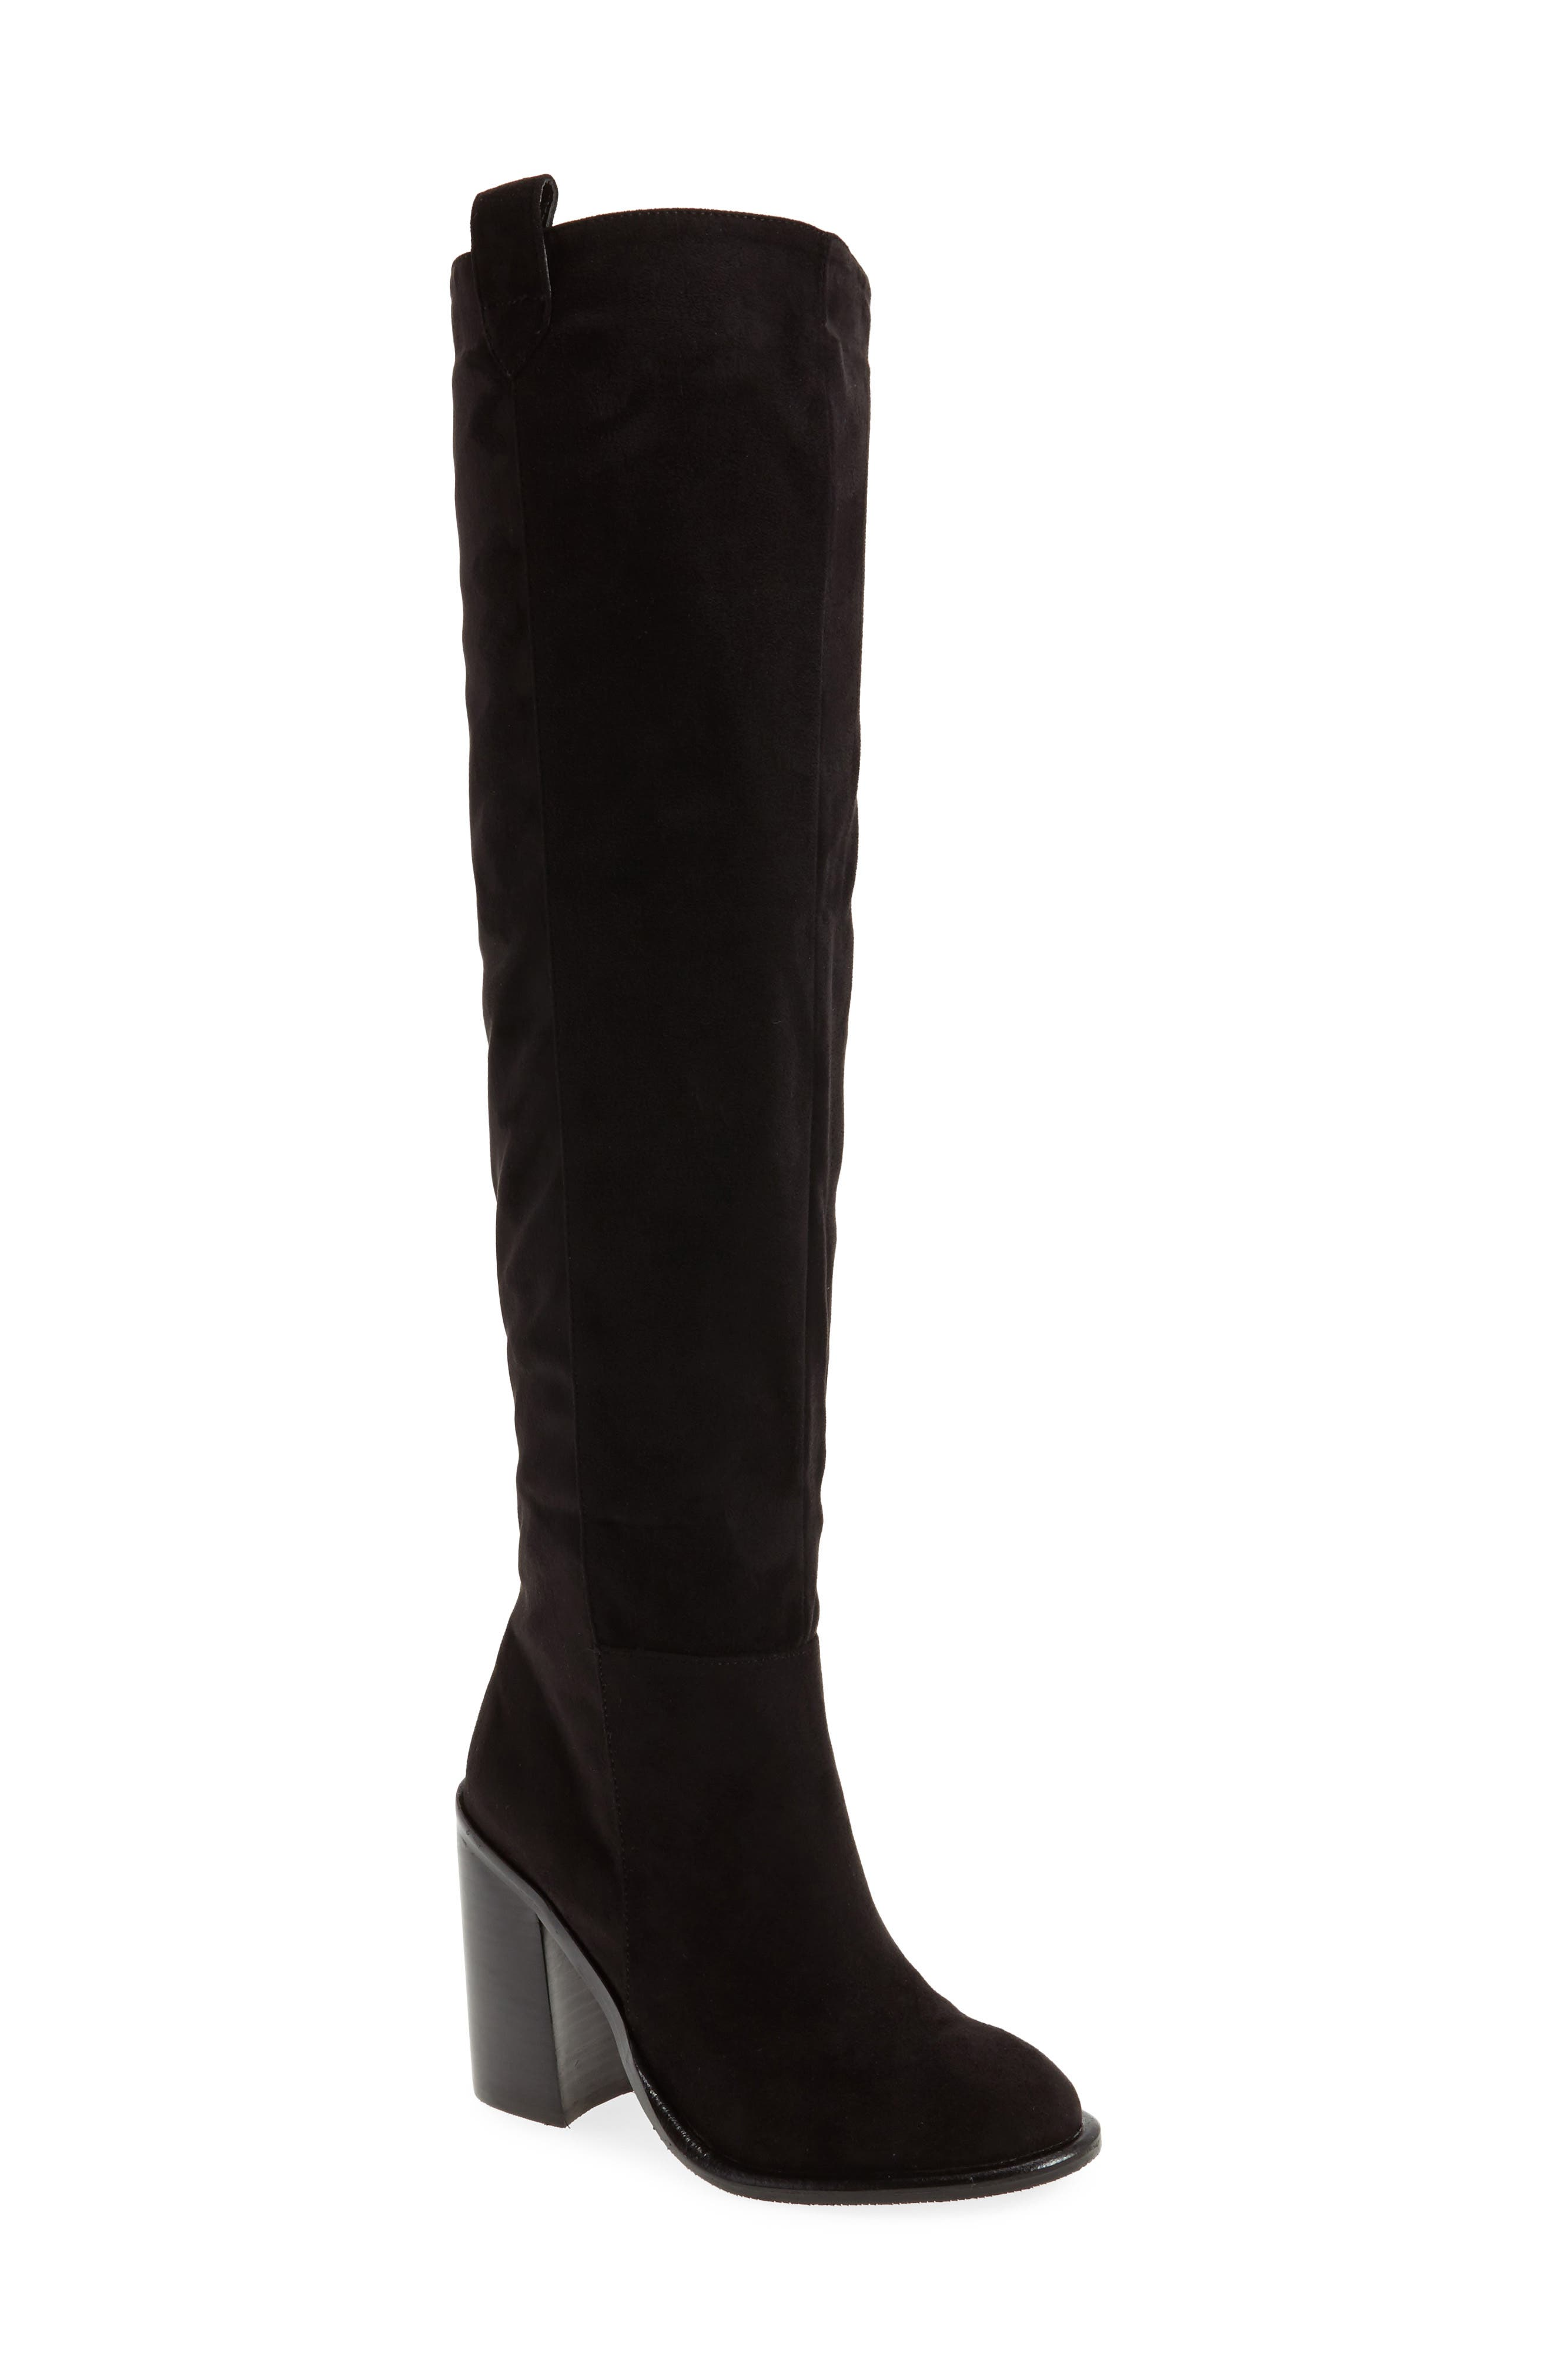 Main Image - Very Volatile Nate Over the Knee Boot (Women)